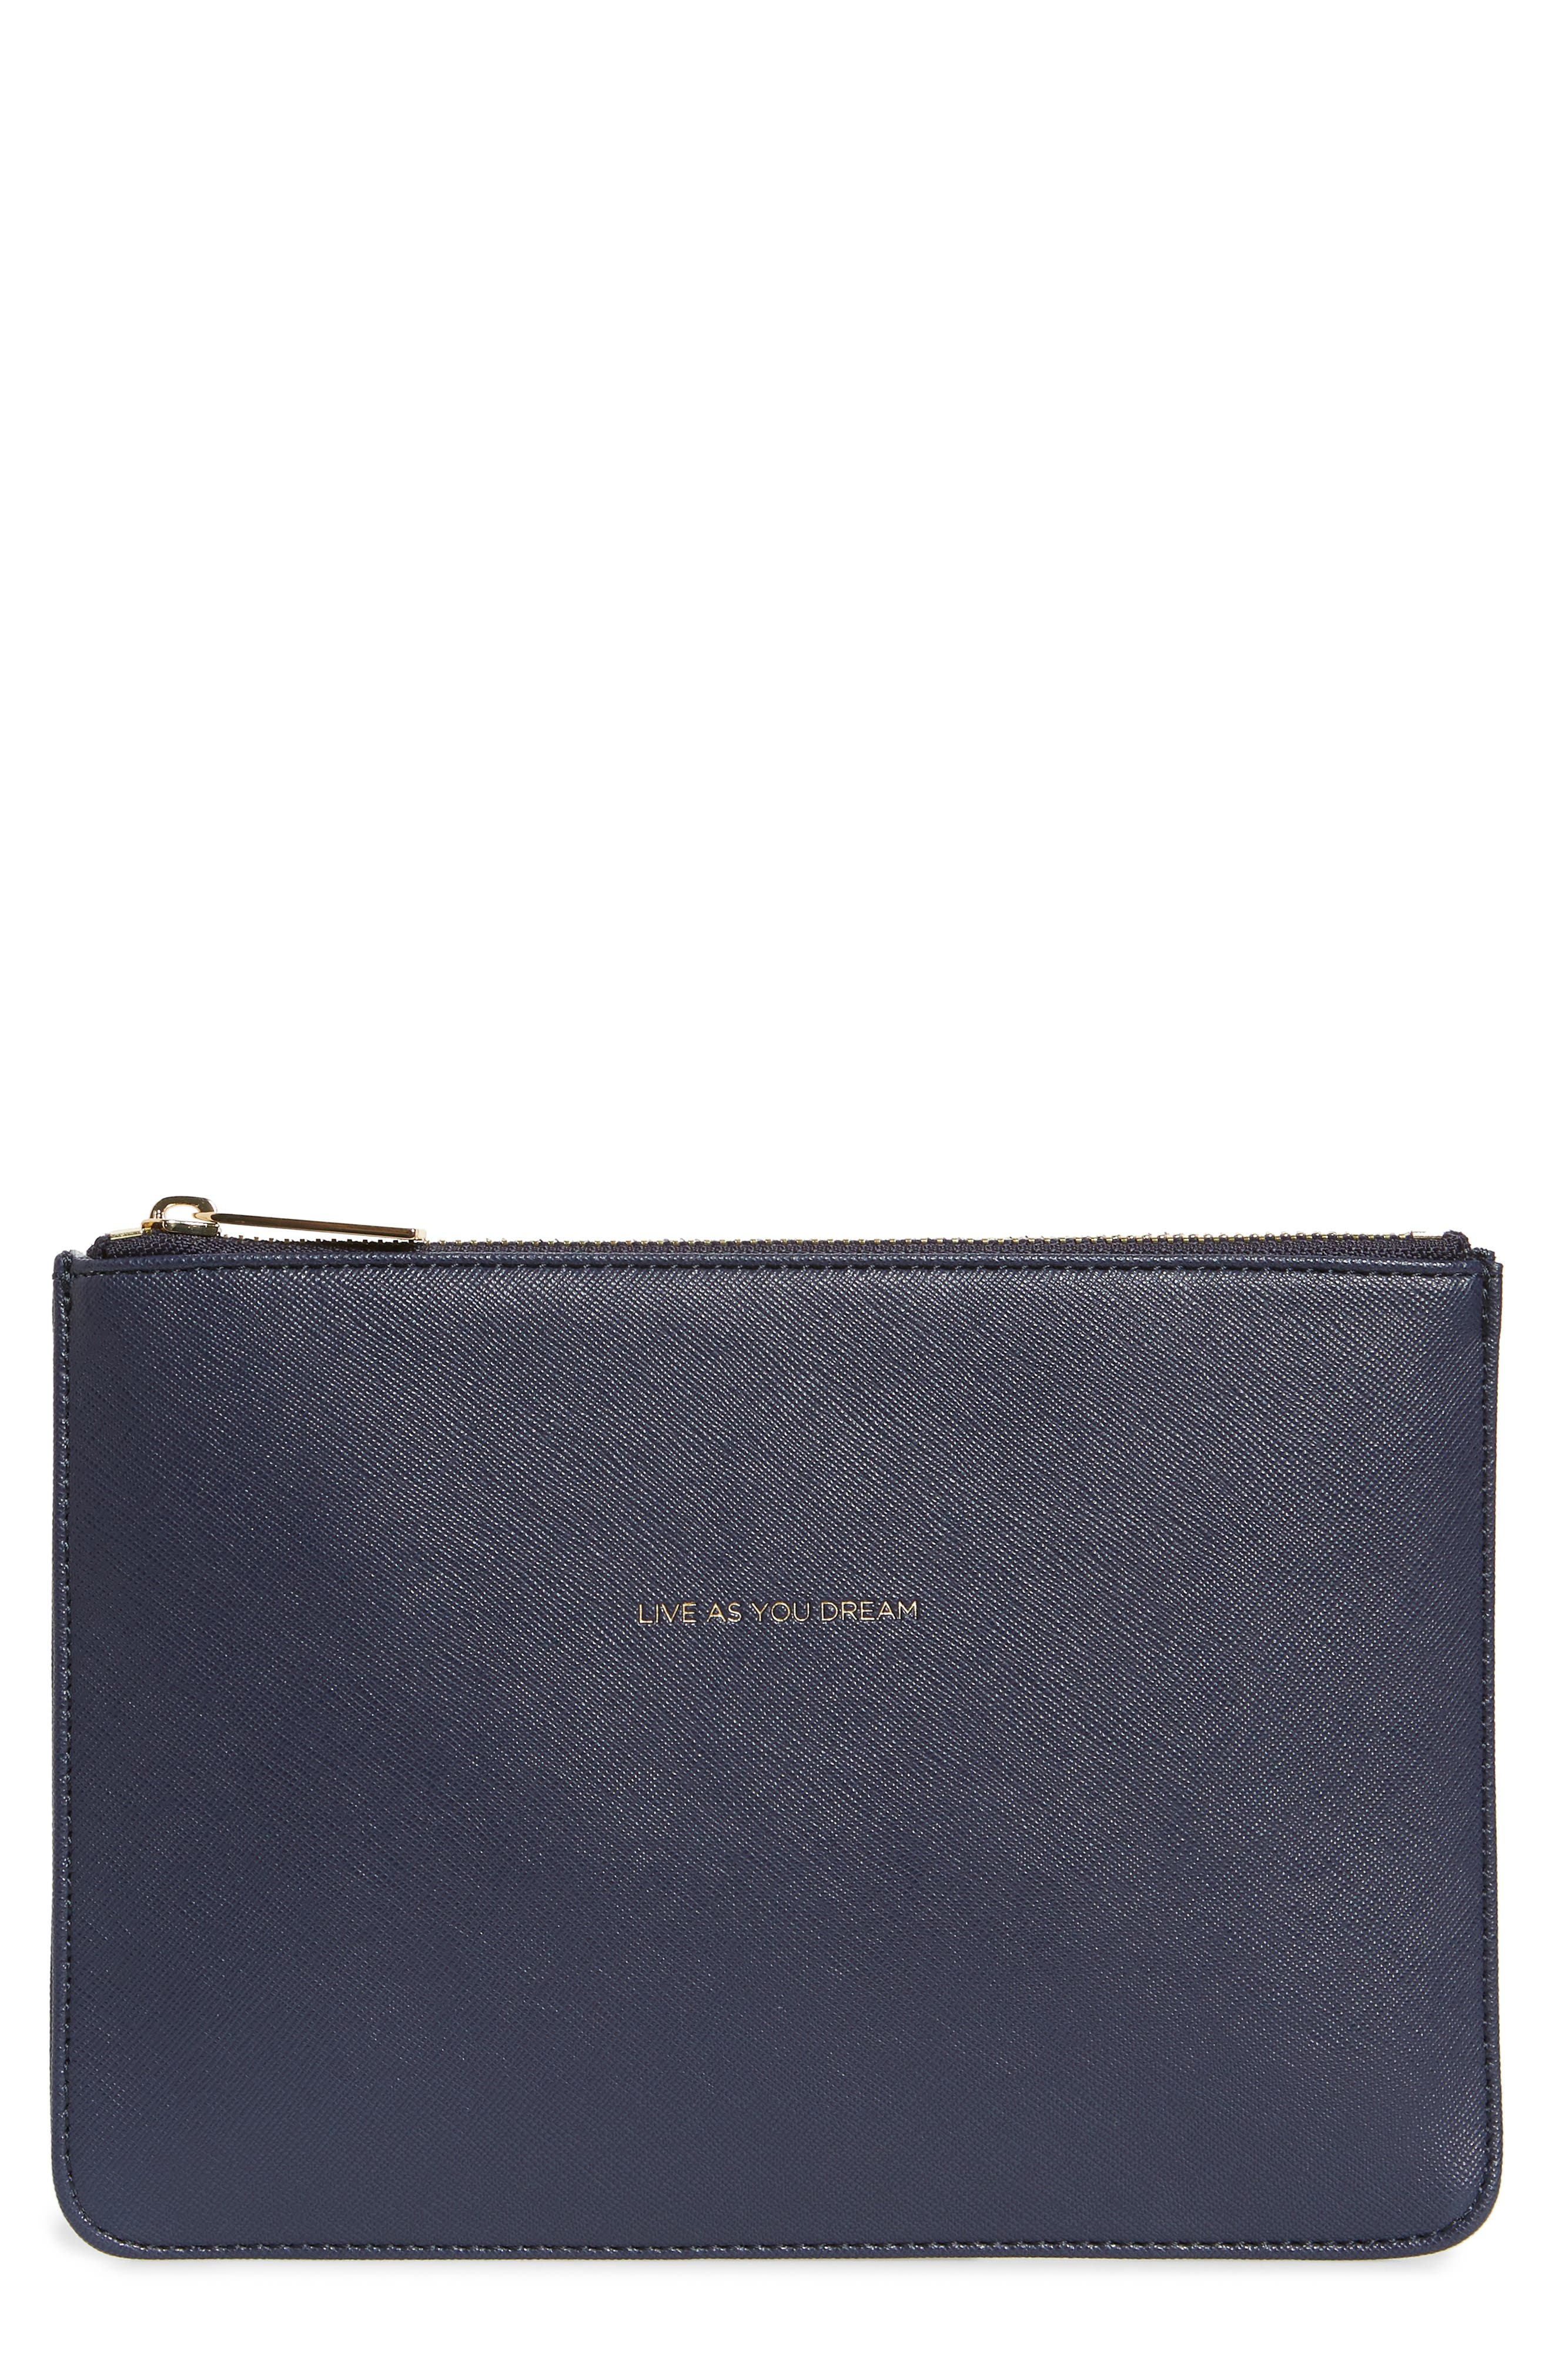 Live As You Dream Medium Faux Leather Pouch,                         Main,                         color, NAVY